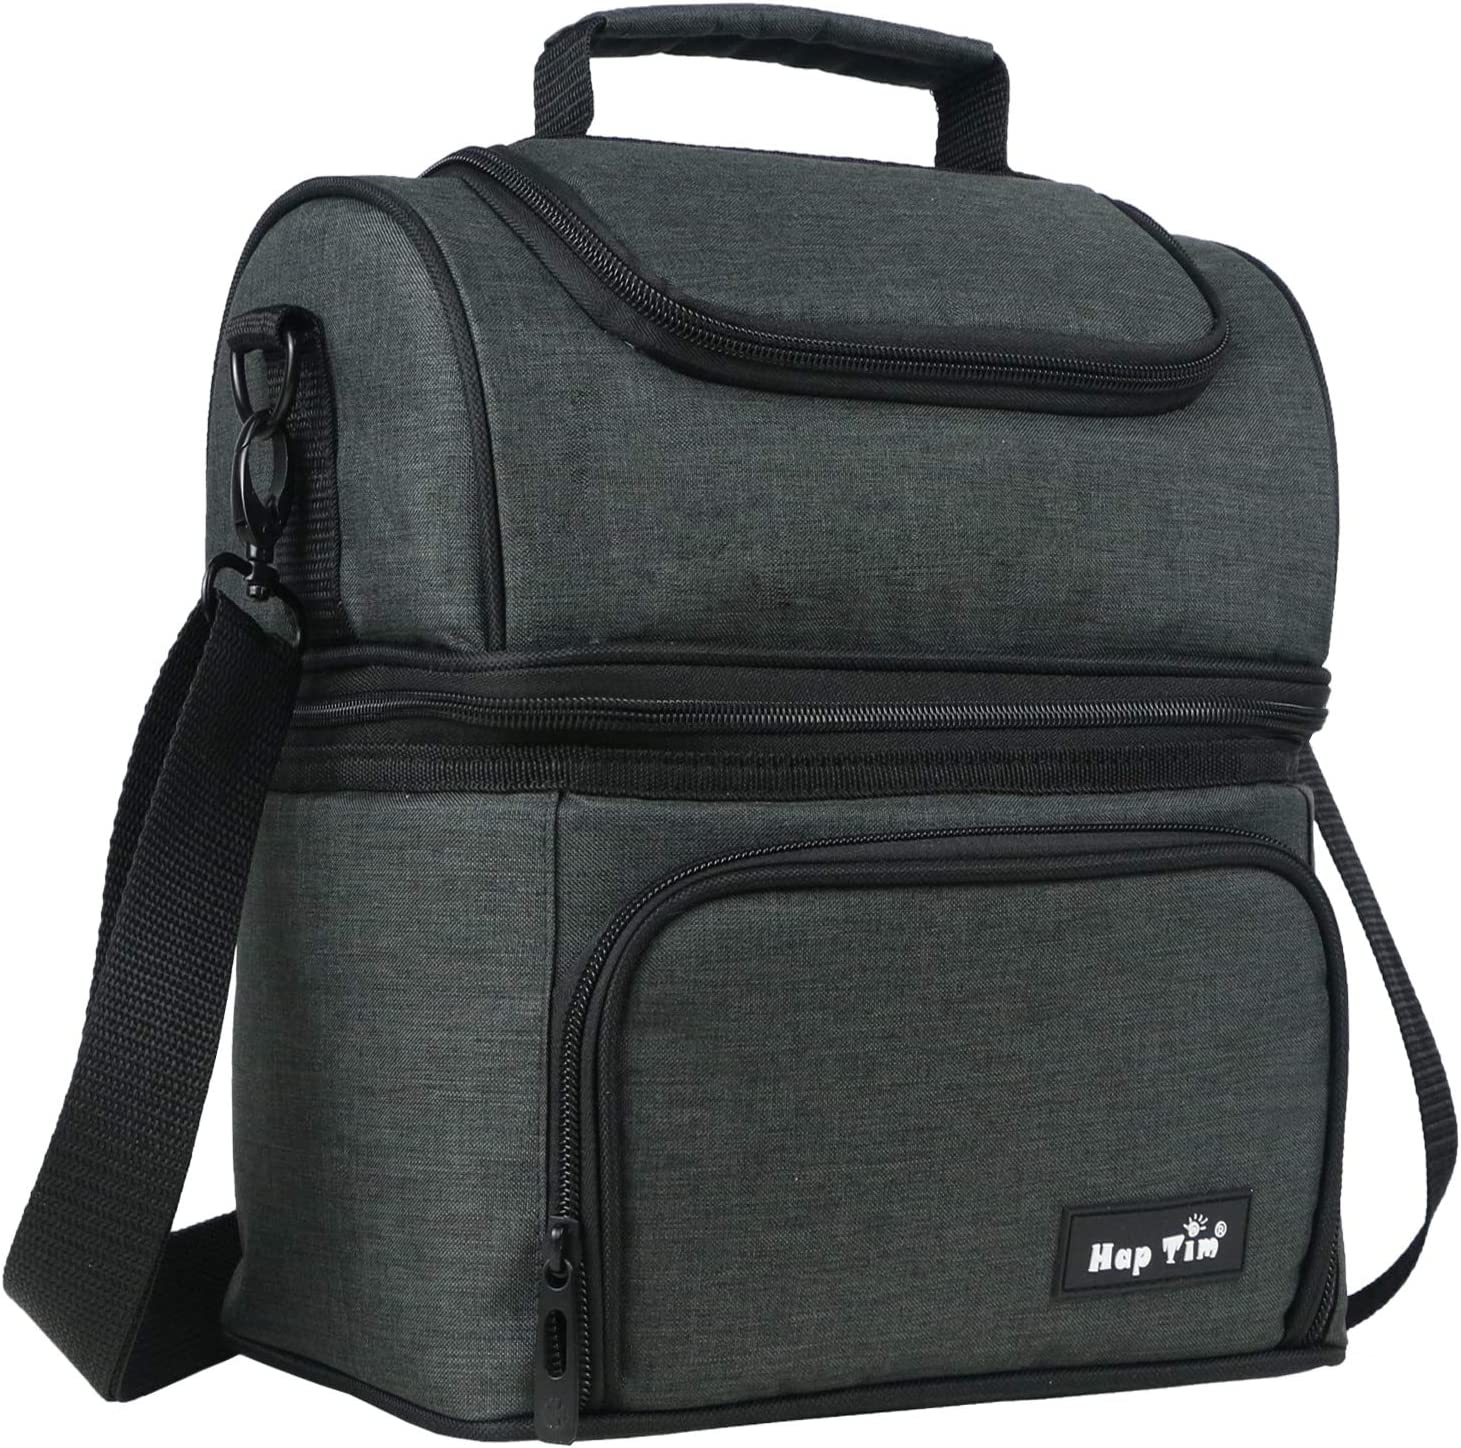 Hap Tim Insulated Lunch Bag Upgraded Large Size Lunch Box for Men, Women,Adult,Kids Dual Compartment Large Lunch Tote Bag for Office/Picnic/Travel/Camping/Work/School (N16040-DG)